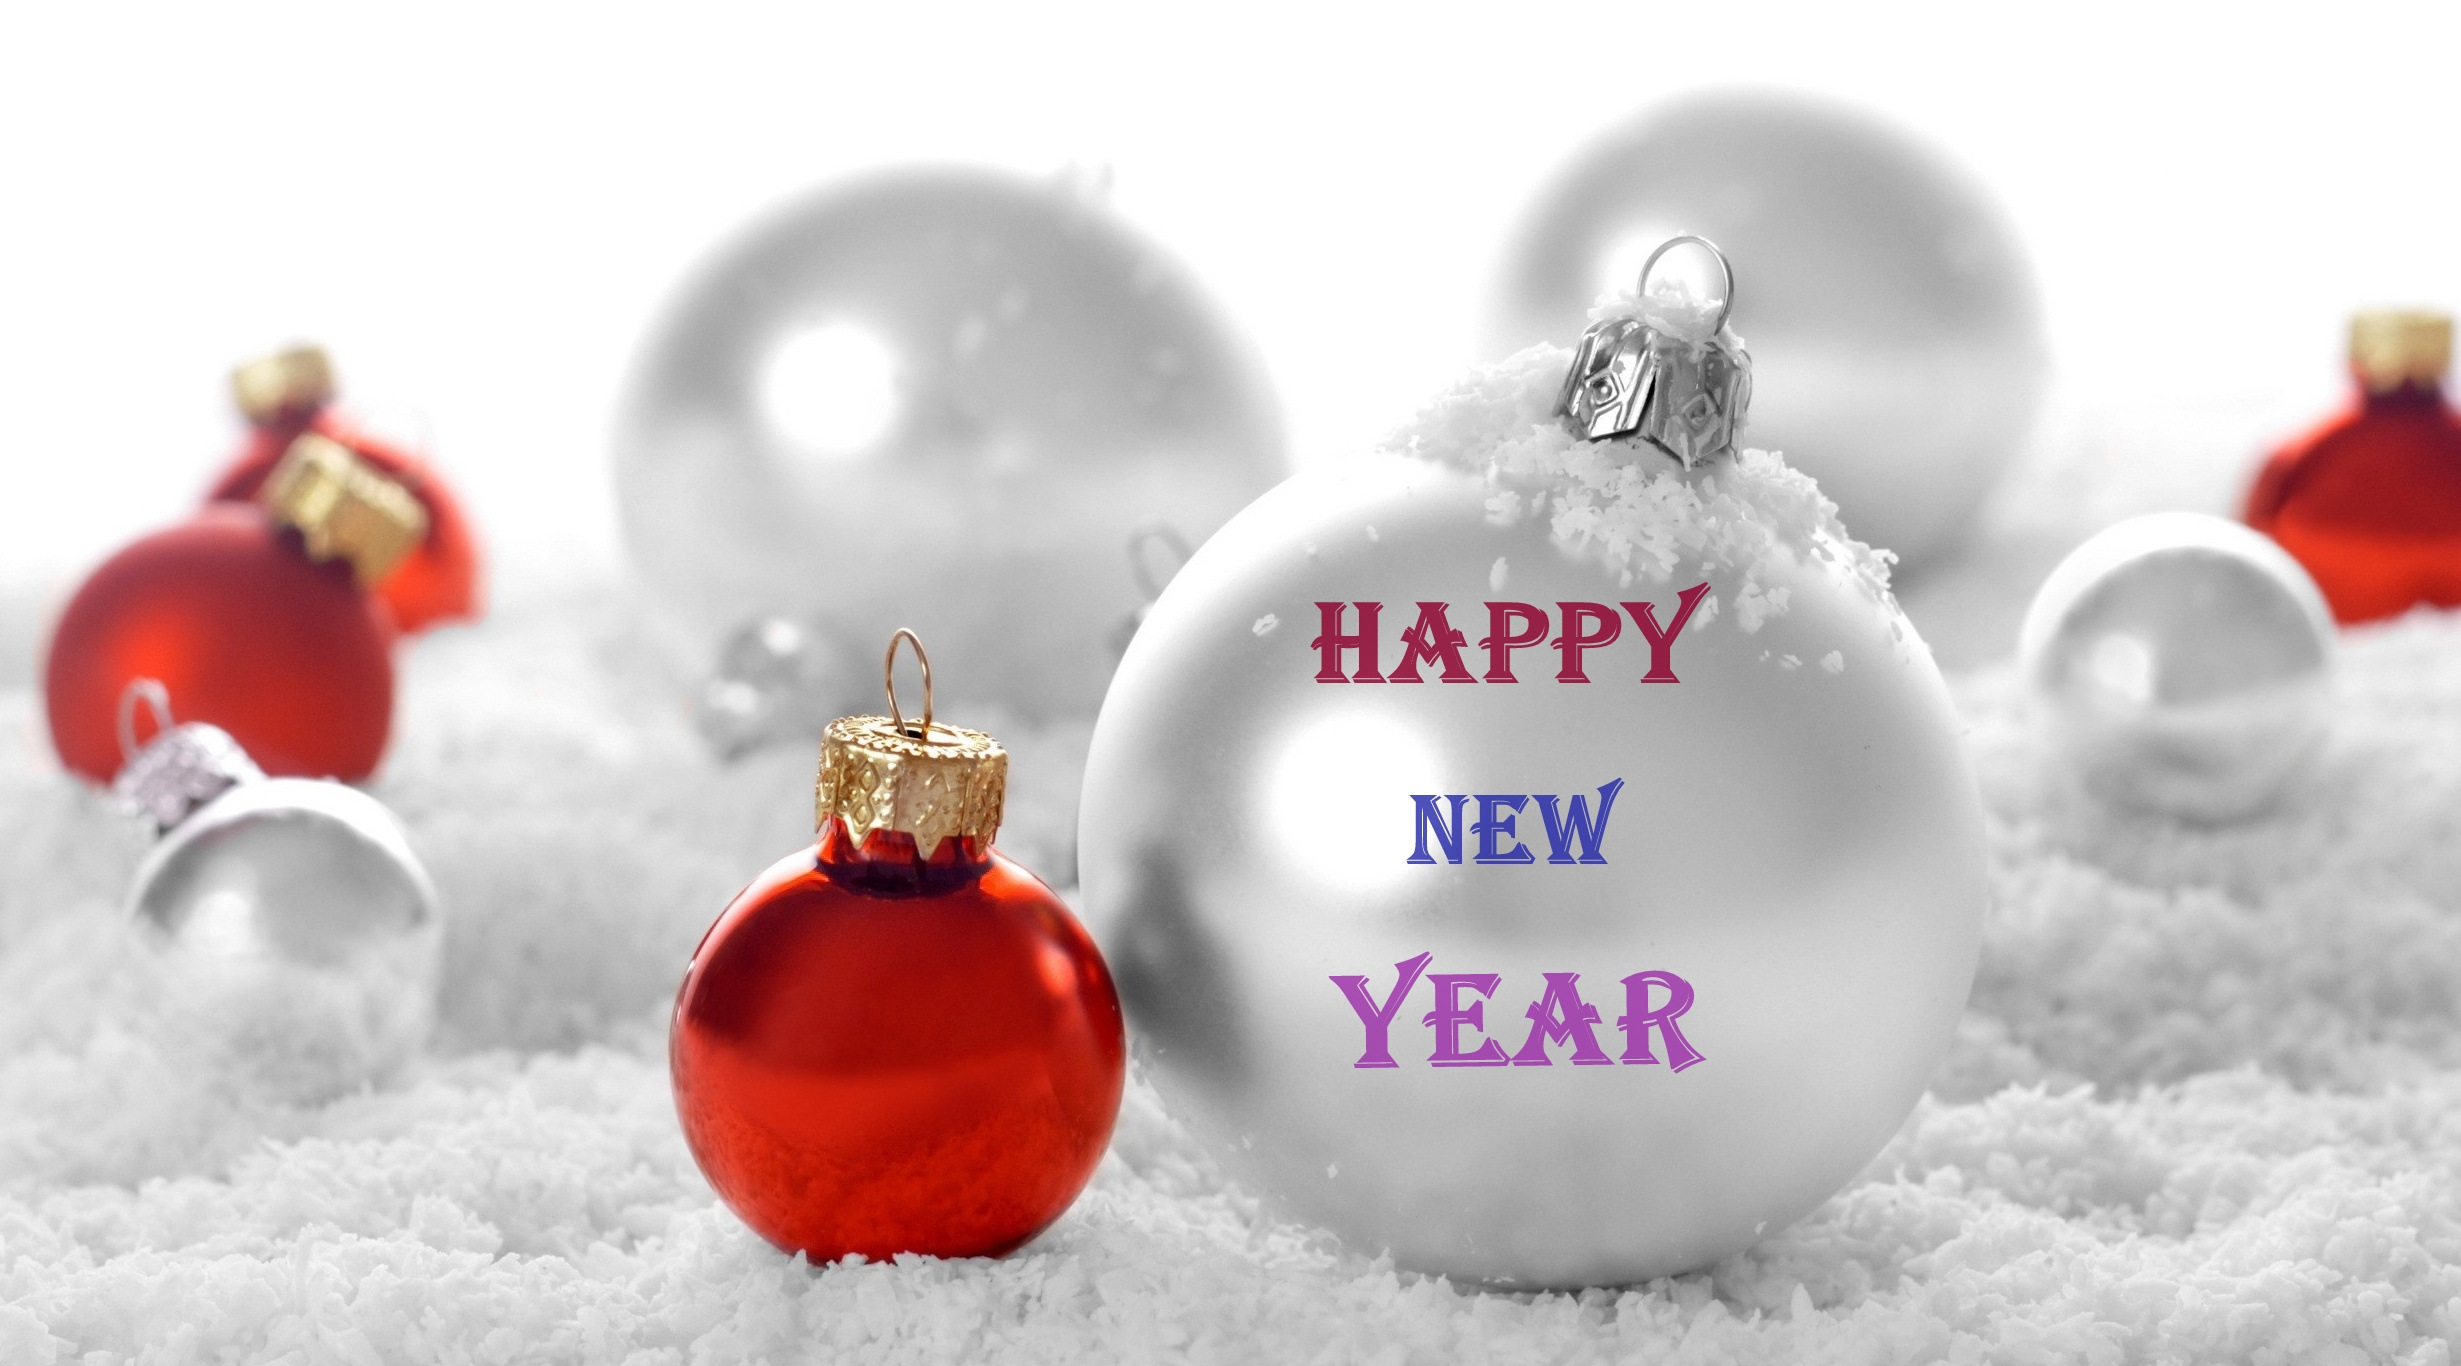 New Year Flower Wallpaper Happy New Year Heart Wallpaper - White Christmas Ornament Background , HD Wallpaper & Backgrounds